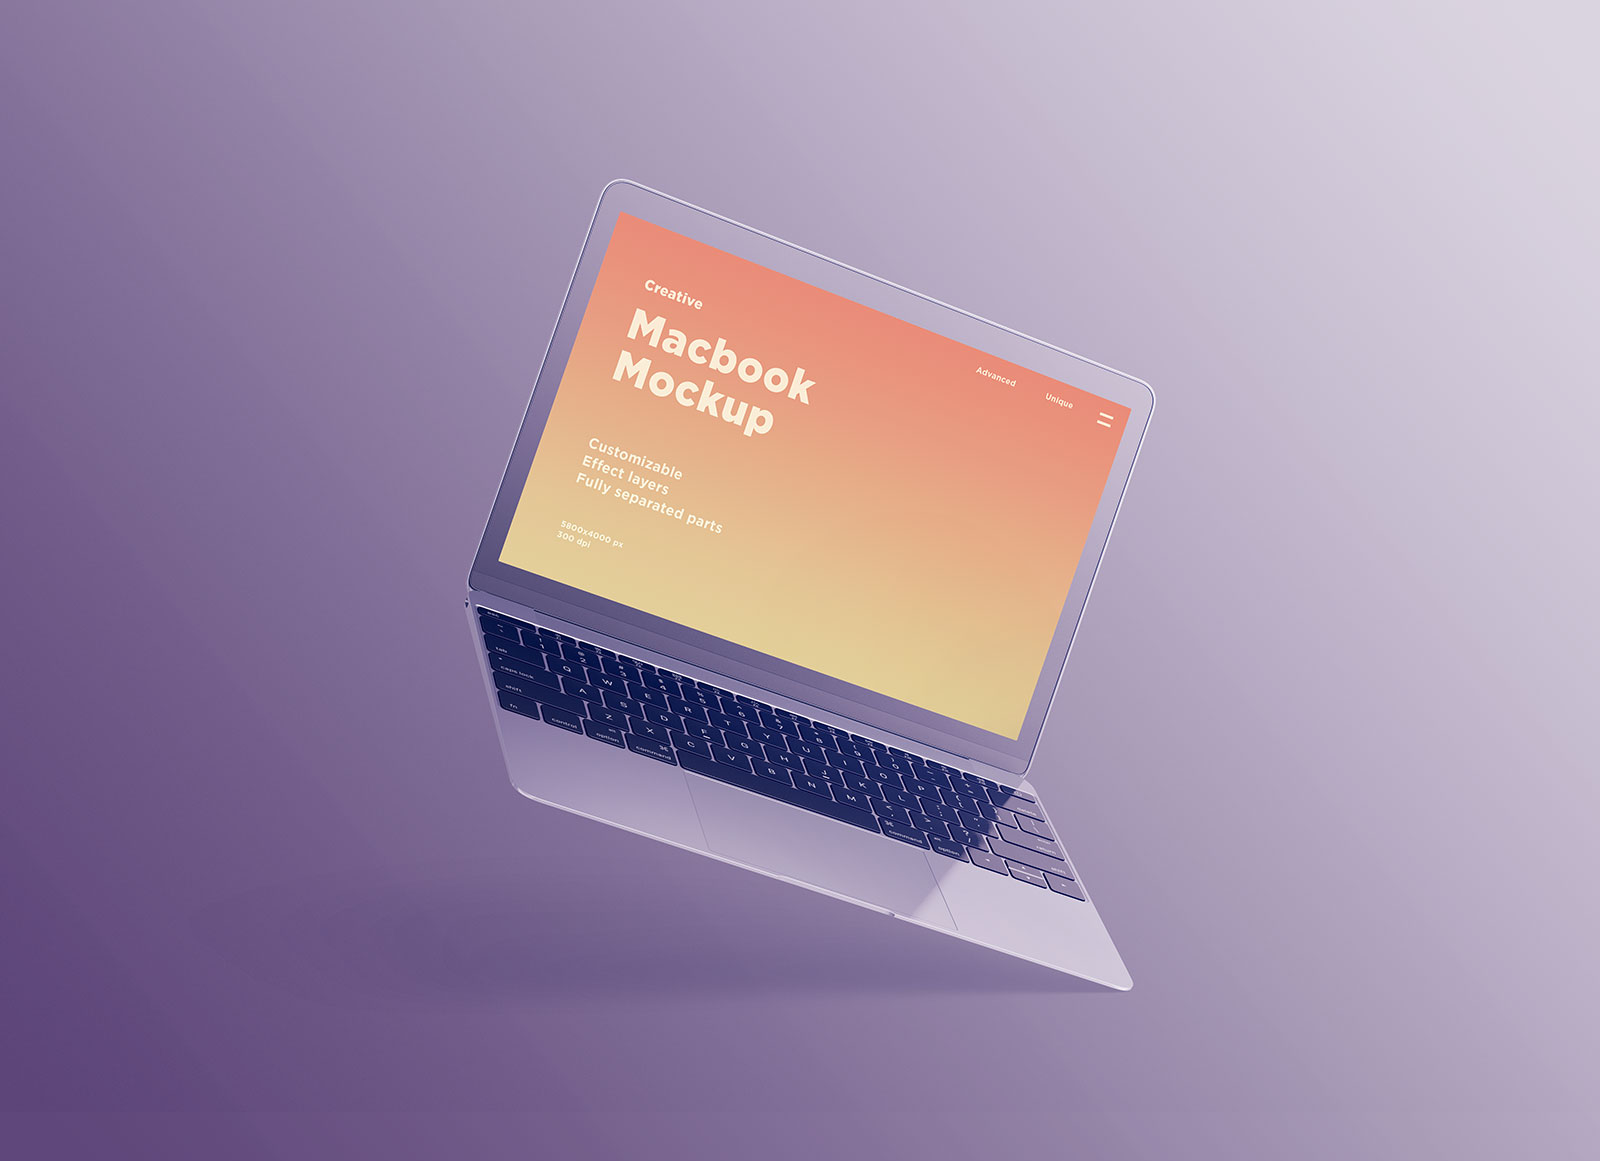 Free-Apple-Macbook-Mockup-with-Colorful-Spheres-4